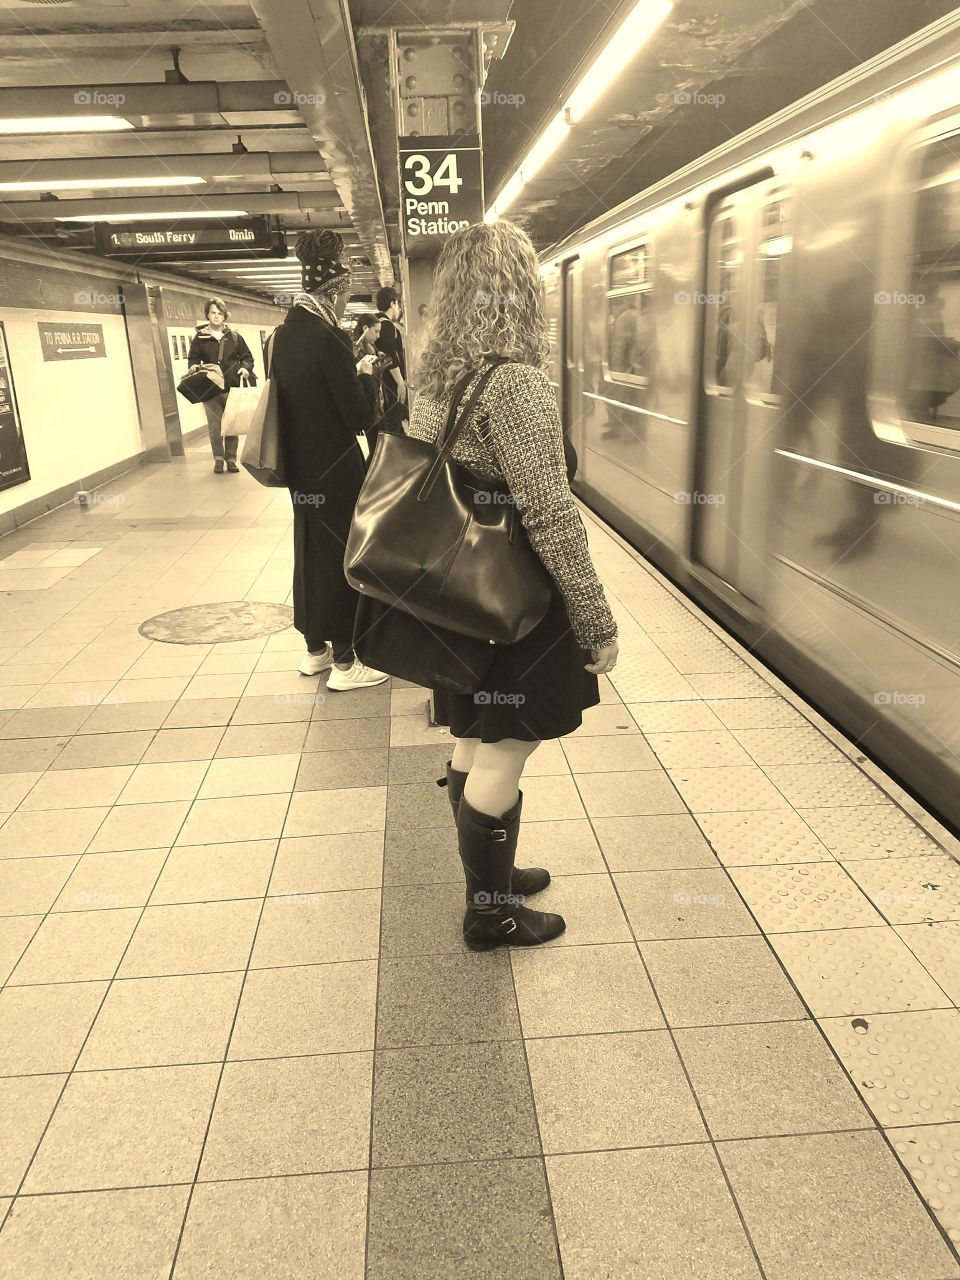 Girl Waiting on Subway Platform in NYC for Train. Sepia Filter. Captured on Android Phone - Galaxy S7. May 2017